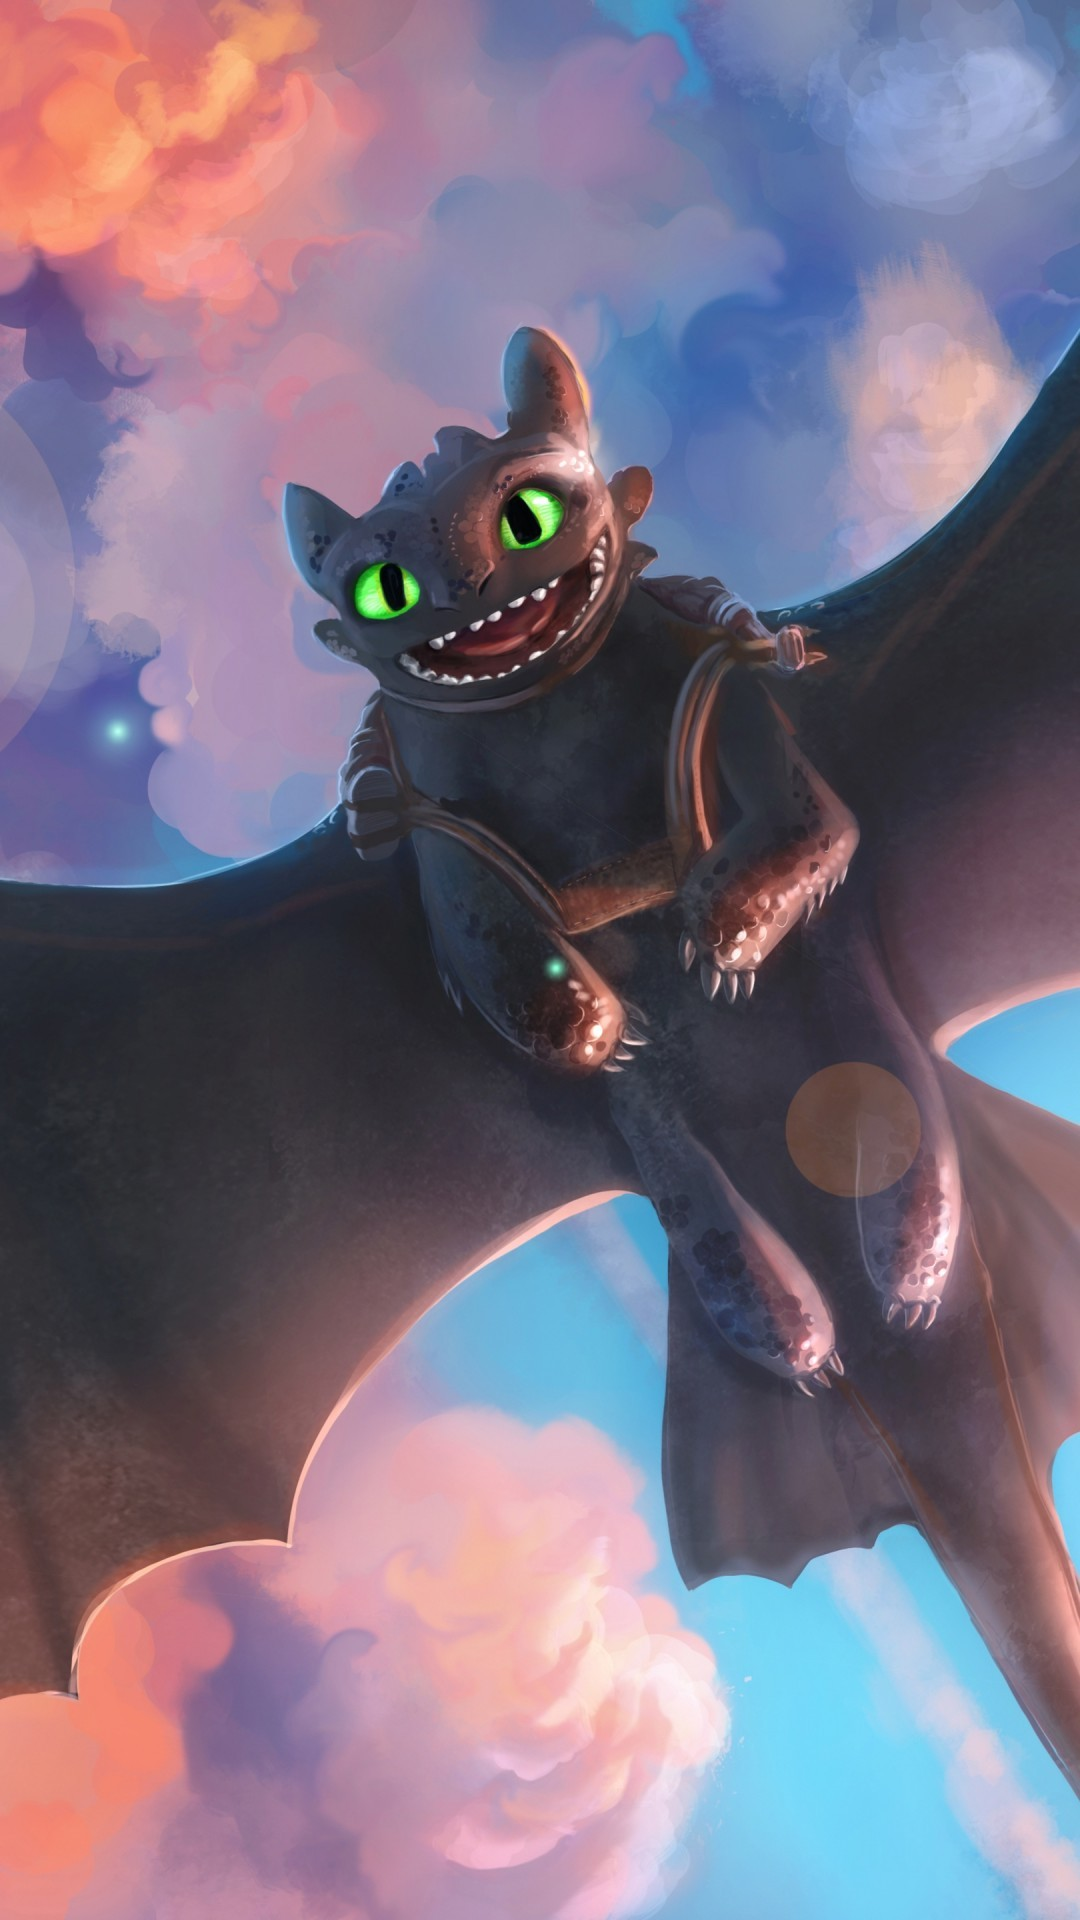 How To Train Your Dragon Night Fury Artwork Toothless Alpha Night Fury 3113117 Hd Wallpaper Backgrounds Download